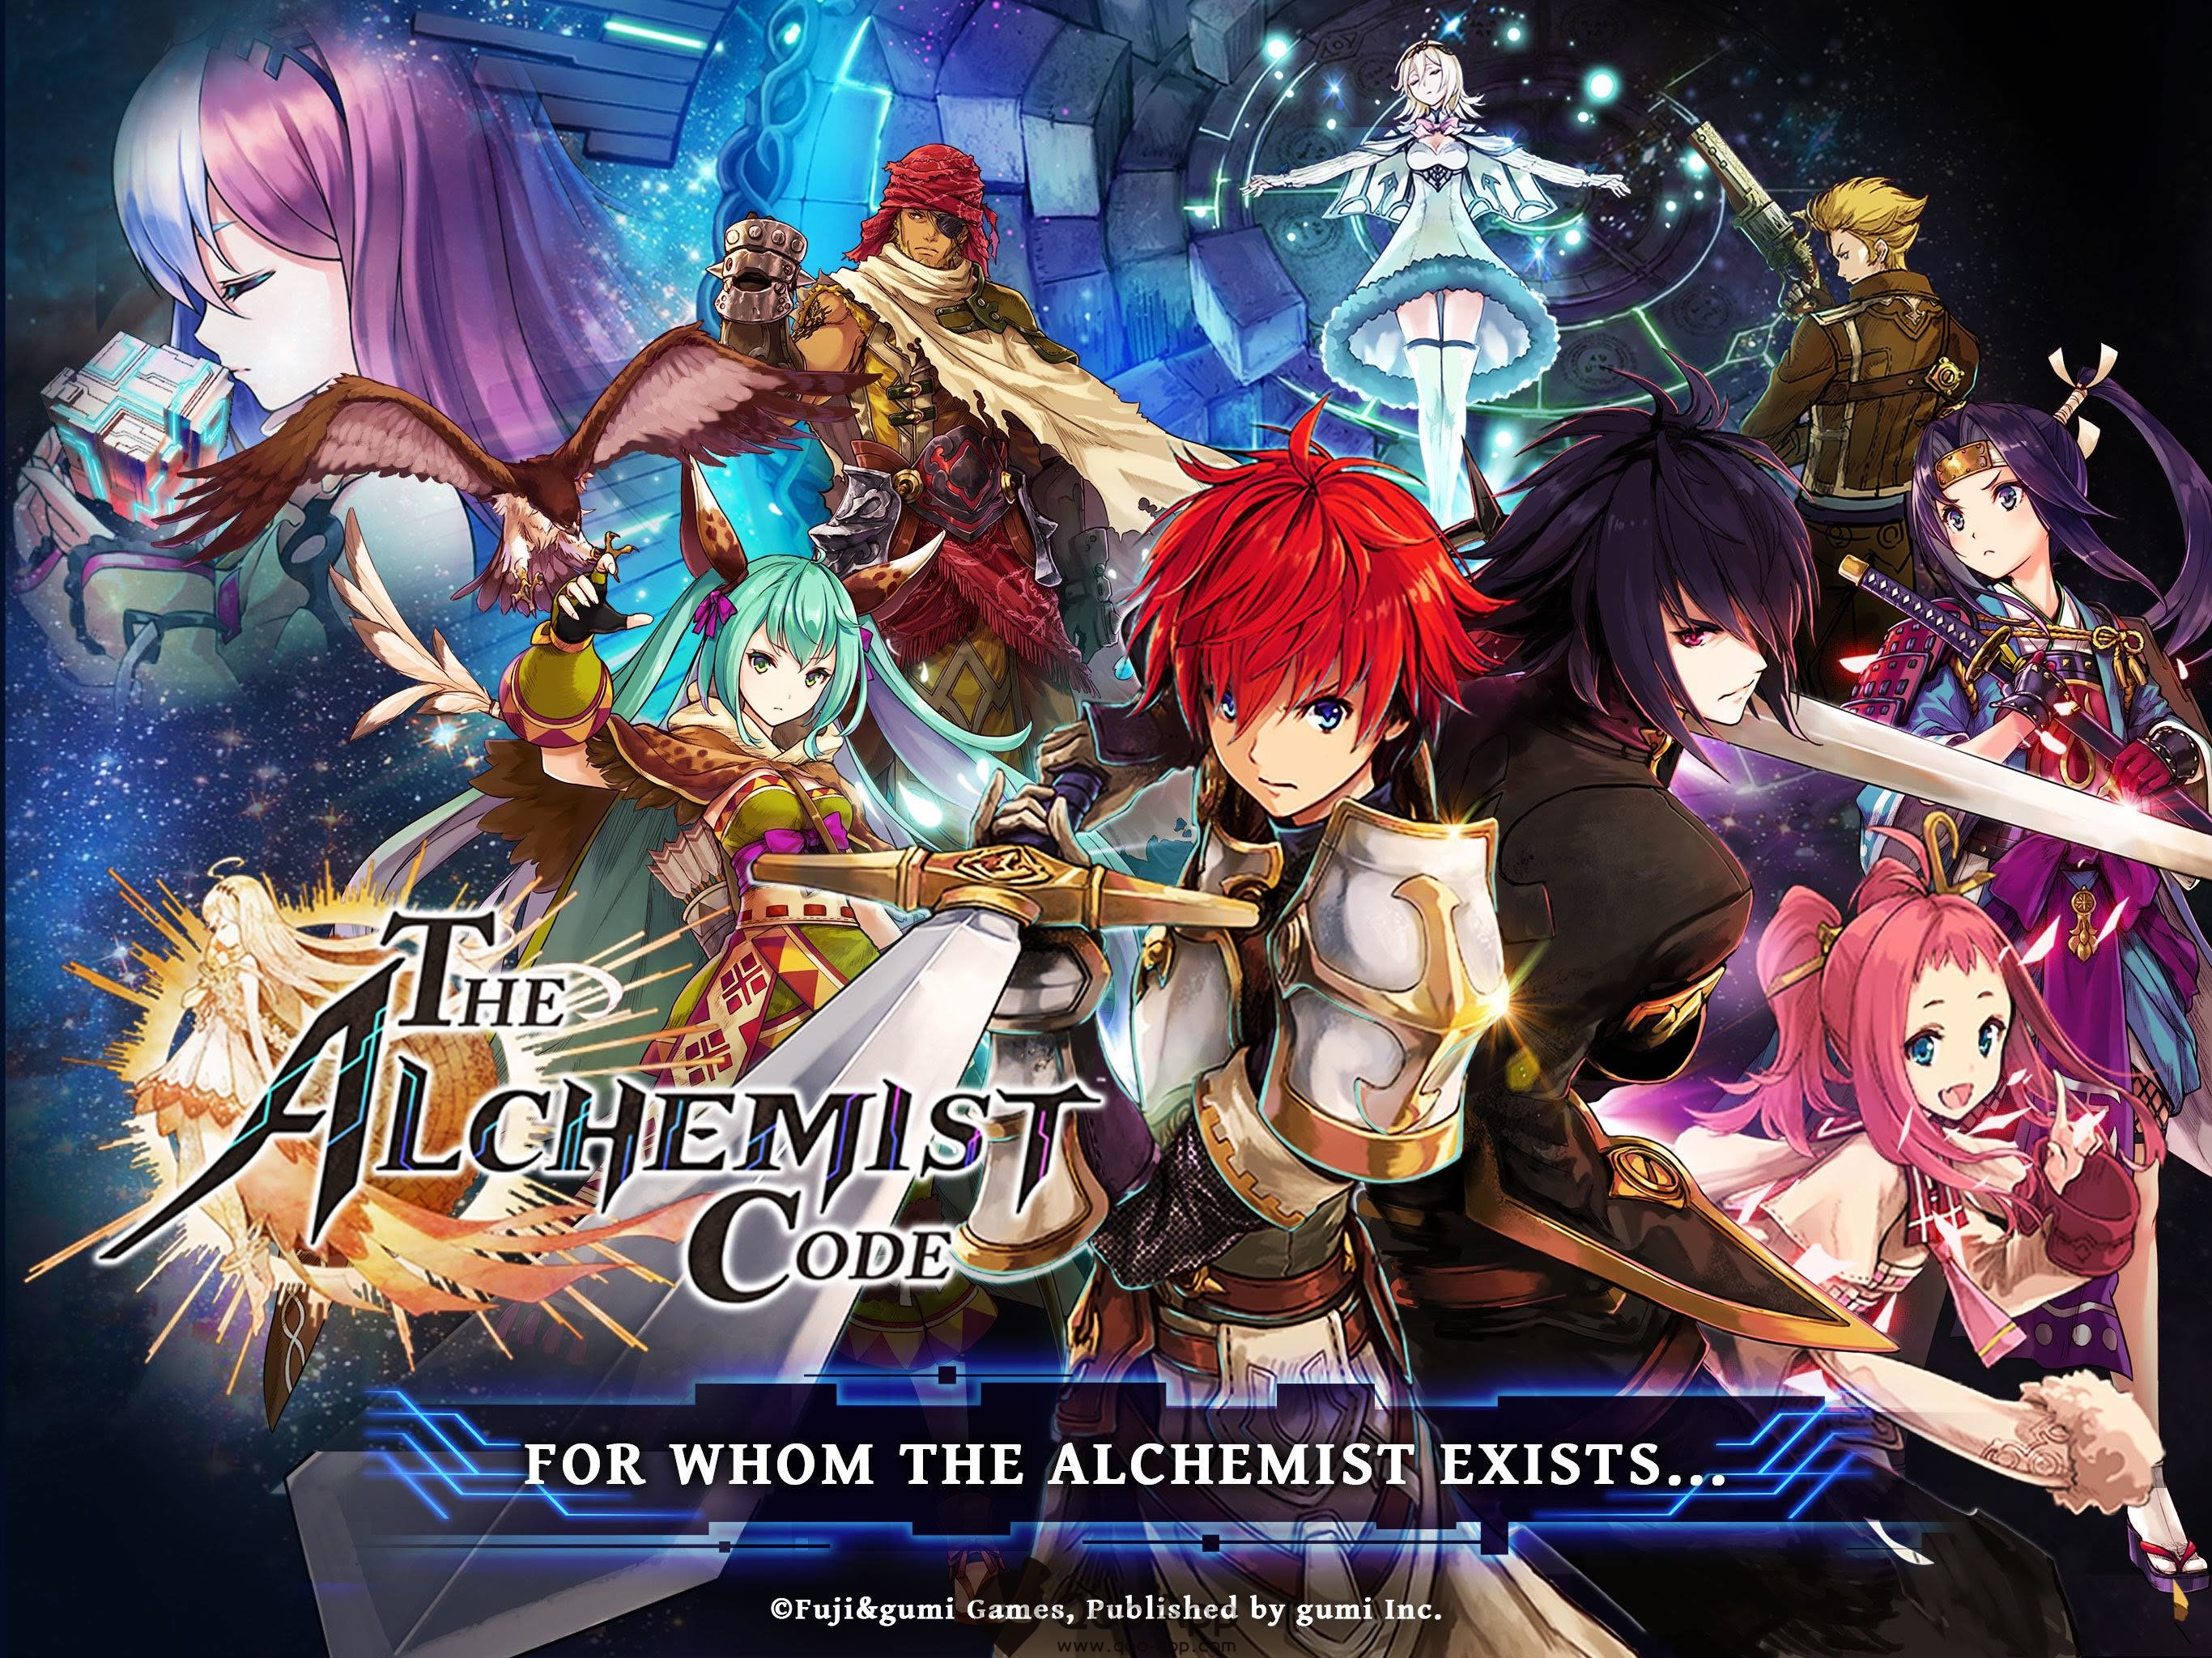 """gumi Inc. Teases Upcoming Mobile SRPG """"The Alchemist Code"""" with First Video Trailer"""